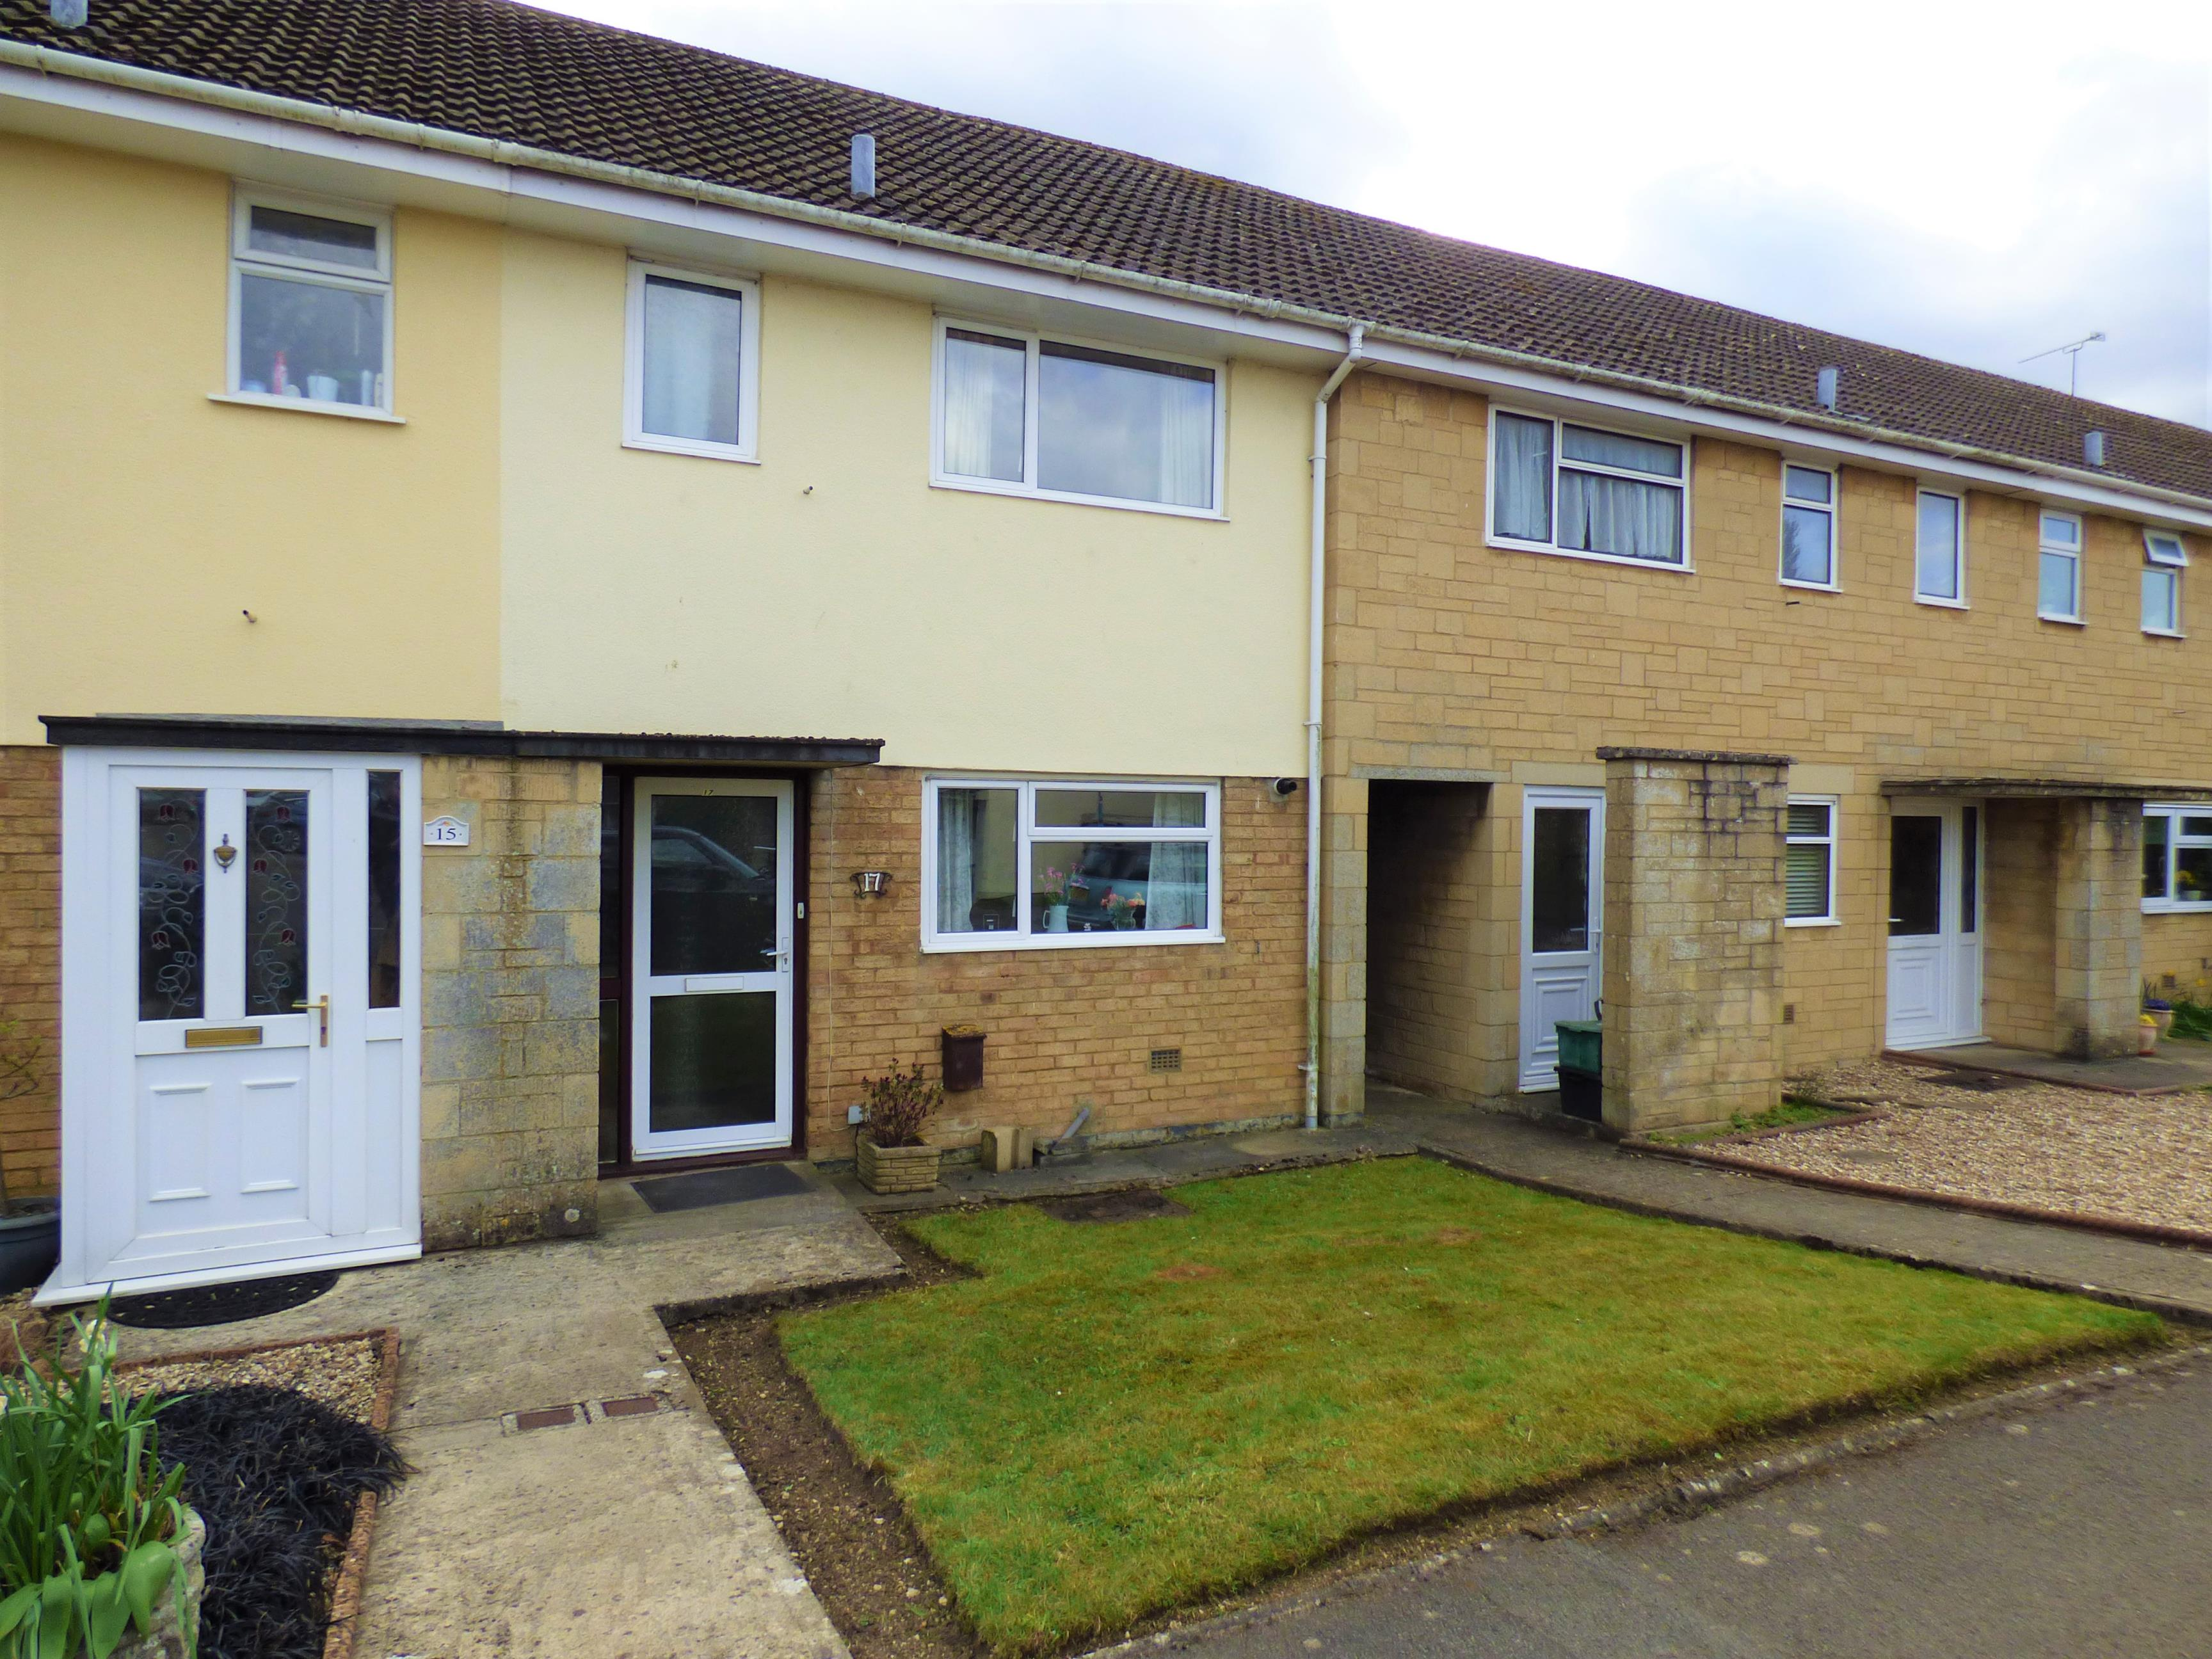 Countess Lilias Road, Cirencester, Gloucestershire